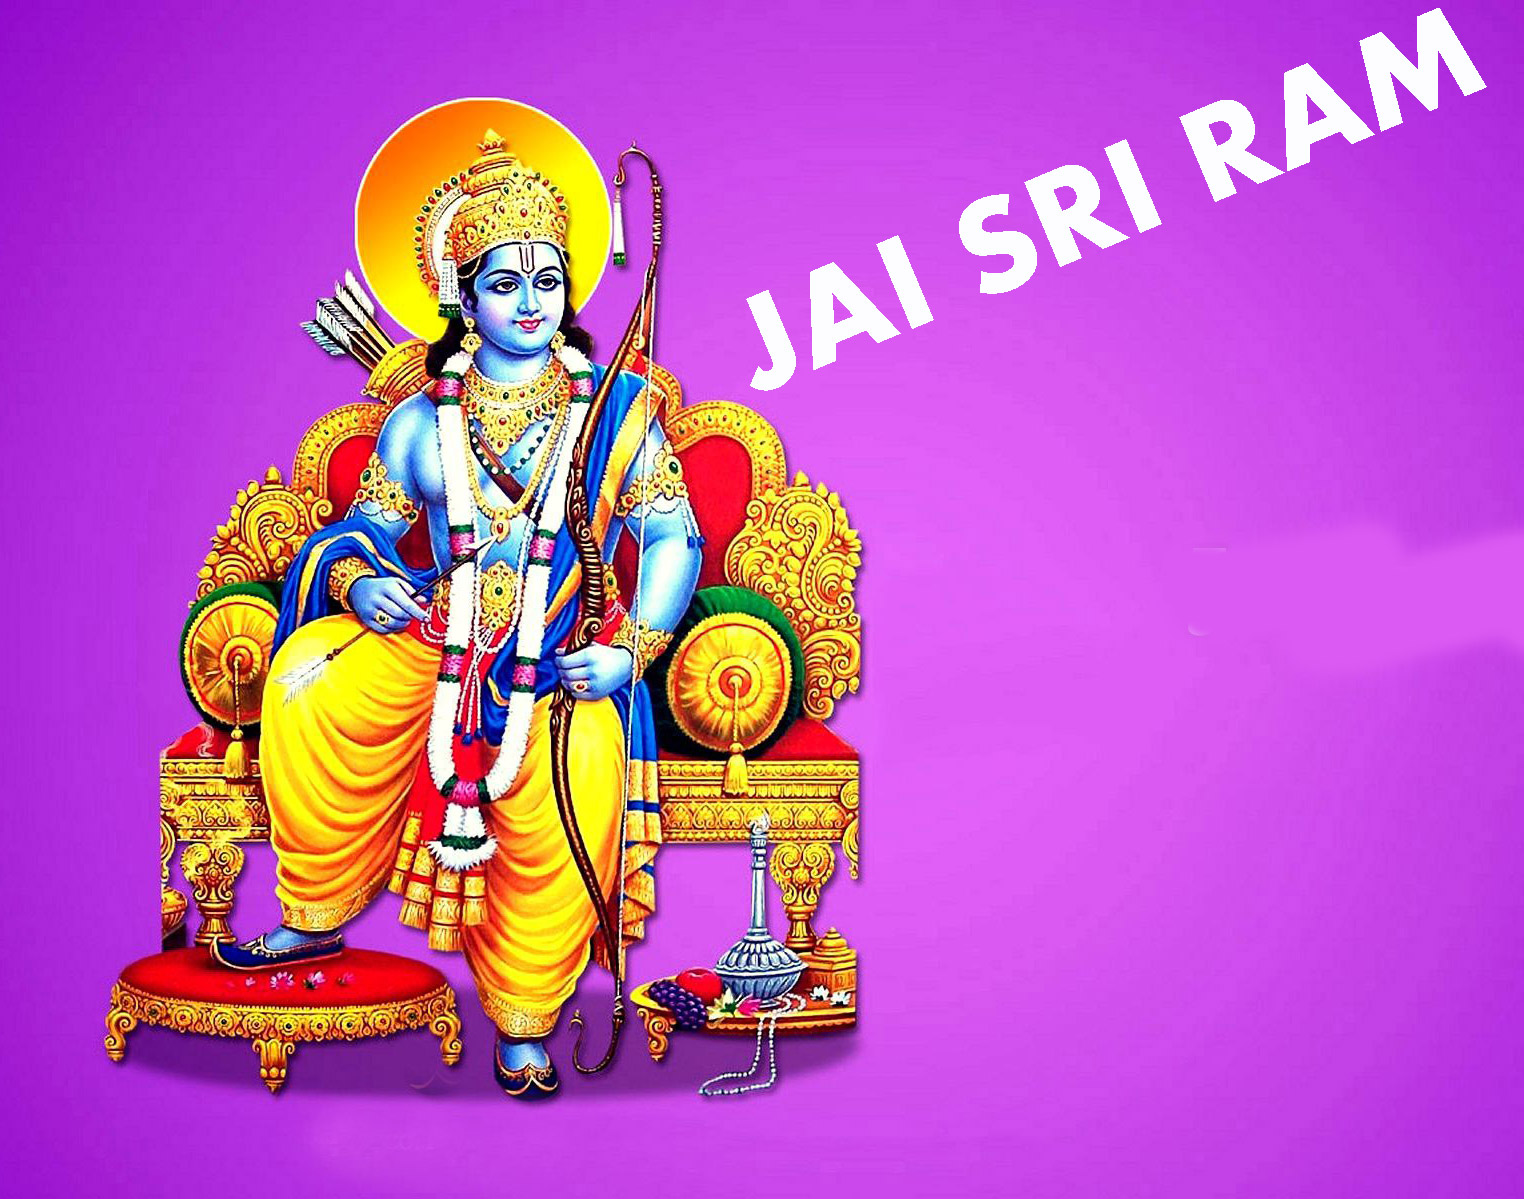 JAI SHRI RAM IMAGES WALLPAPER PICTURES DOWNLOAD & SHARE